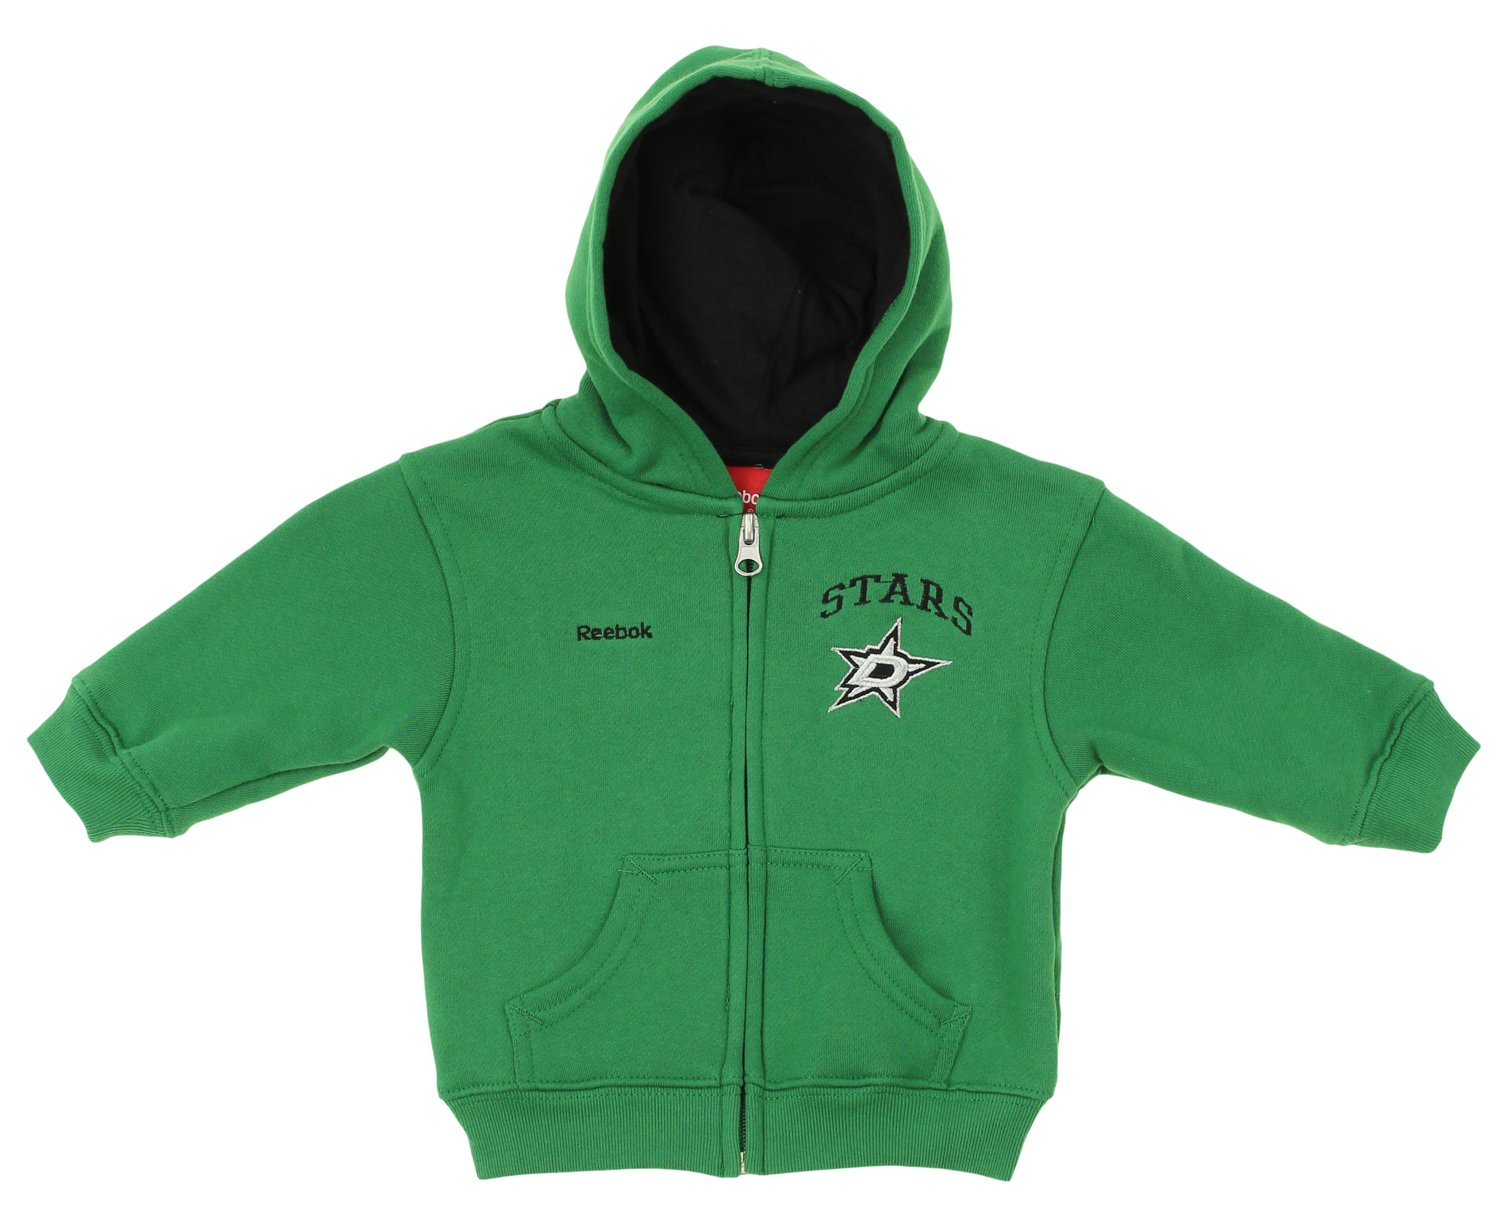 9a62b42dea435 Amazon.com: Reebok NHL Infant Toddler's Pledge Full Zip Hoodie, Team ...